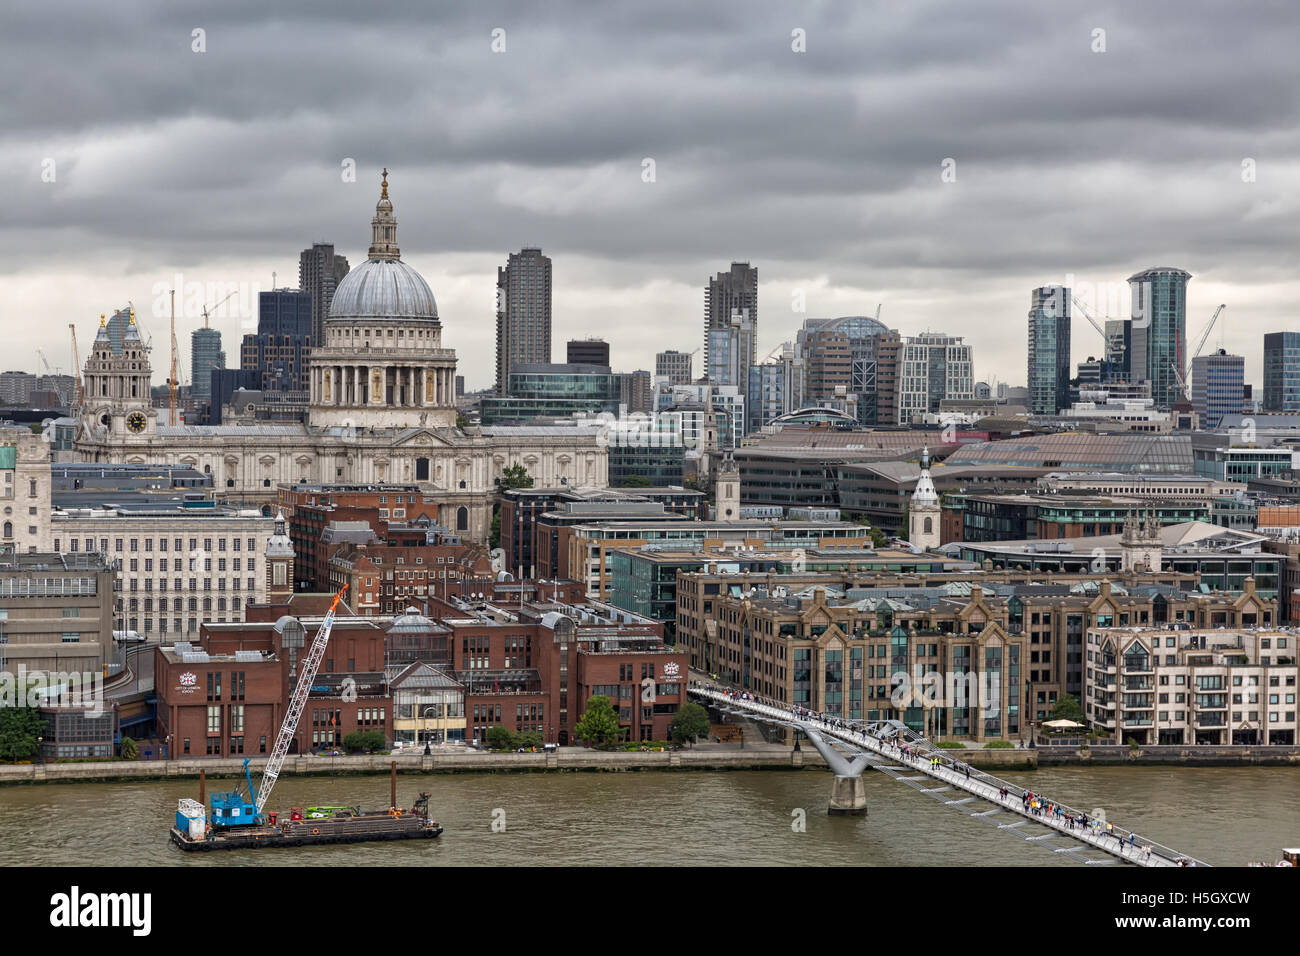 London, UK - July 2016:  View from a tall building of the imposing St Paul's Cathedral in the City of London - Stock Image